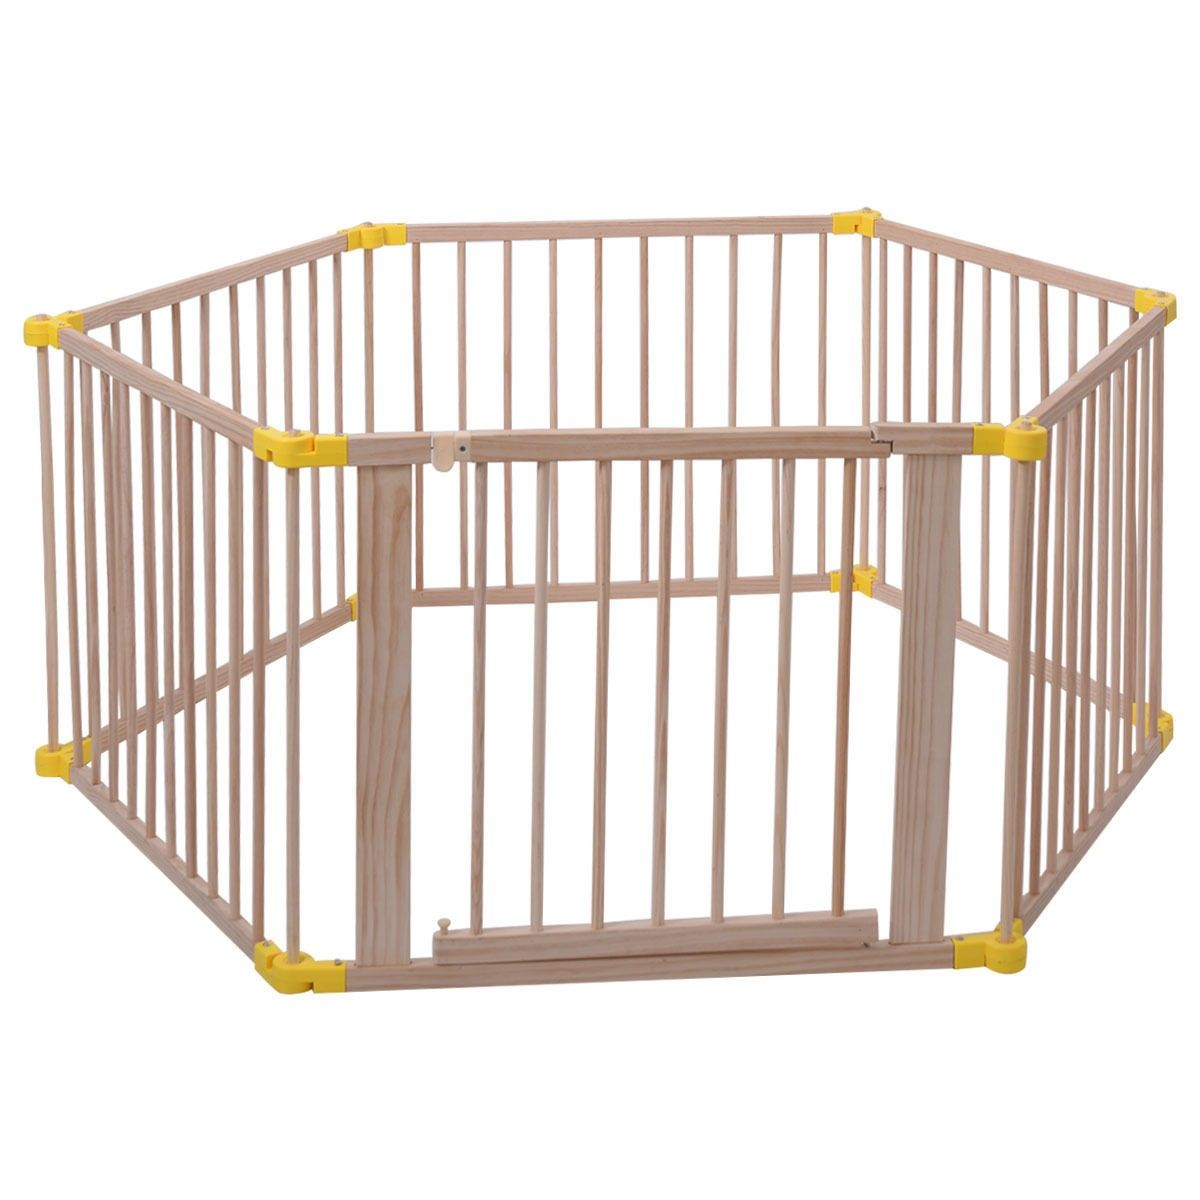 Baby Playpen 6 Panel Foldable Wooden Frame Kids Safety Play Fence